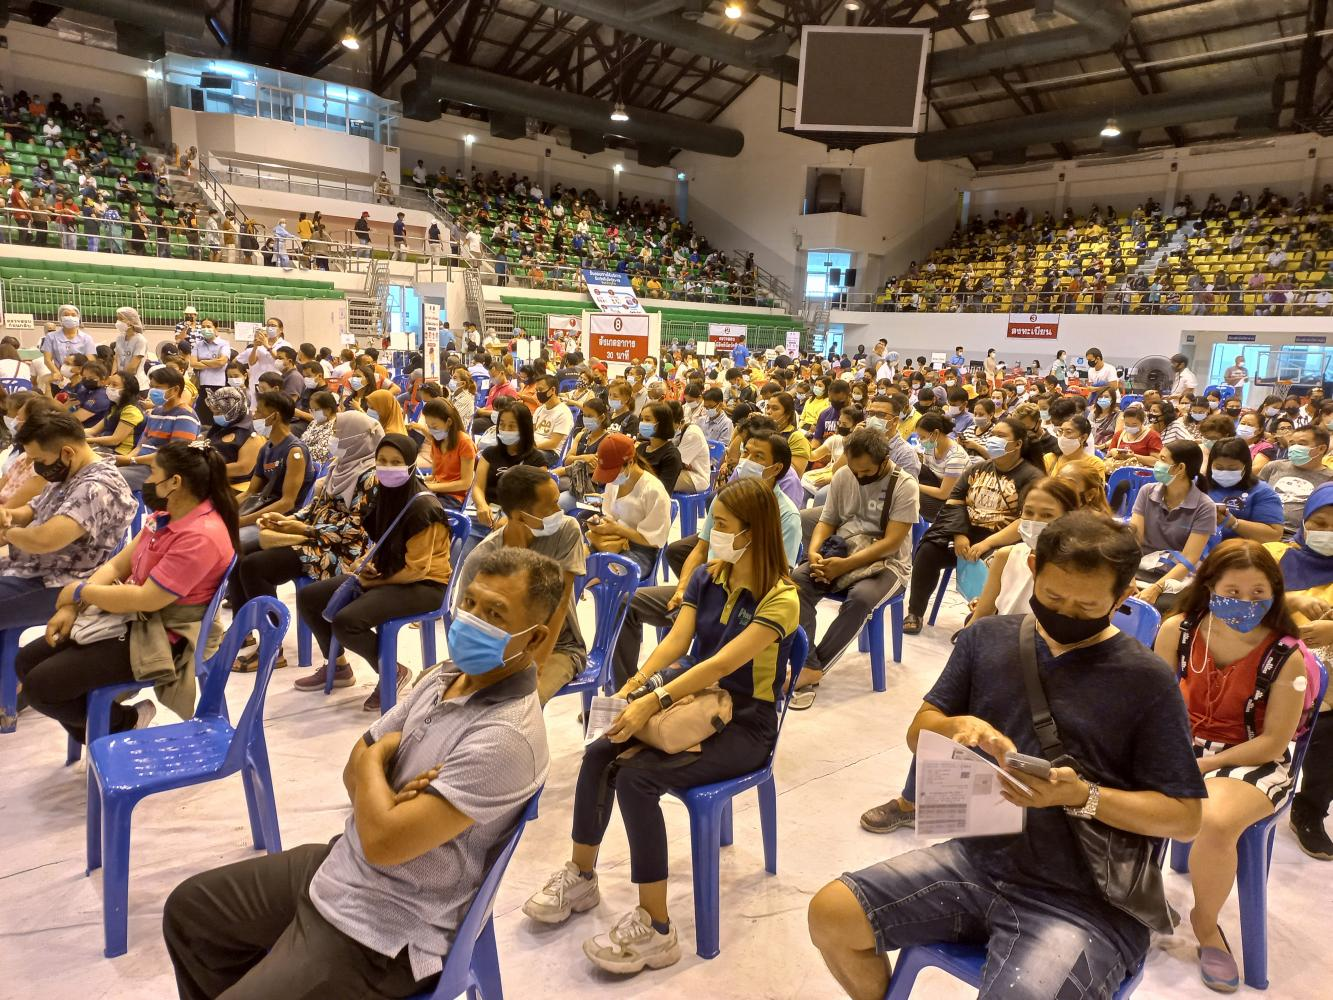 People wait to be vaccinated against Covid-19 at a gymnasium in Saphan Hin, in Phuket. The province is vaccinating local people ahead of reopening to foreign tourists in July. Achadthaya Chuenniran